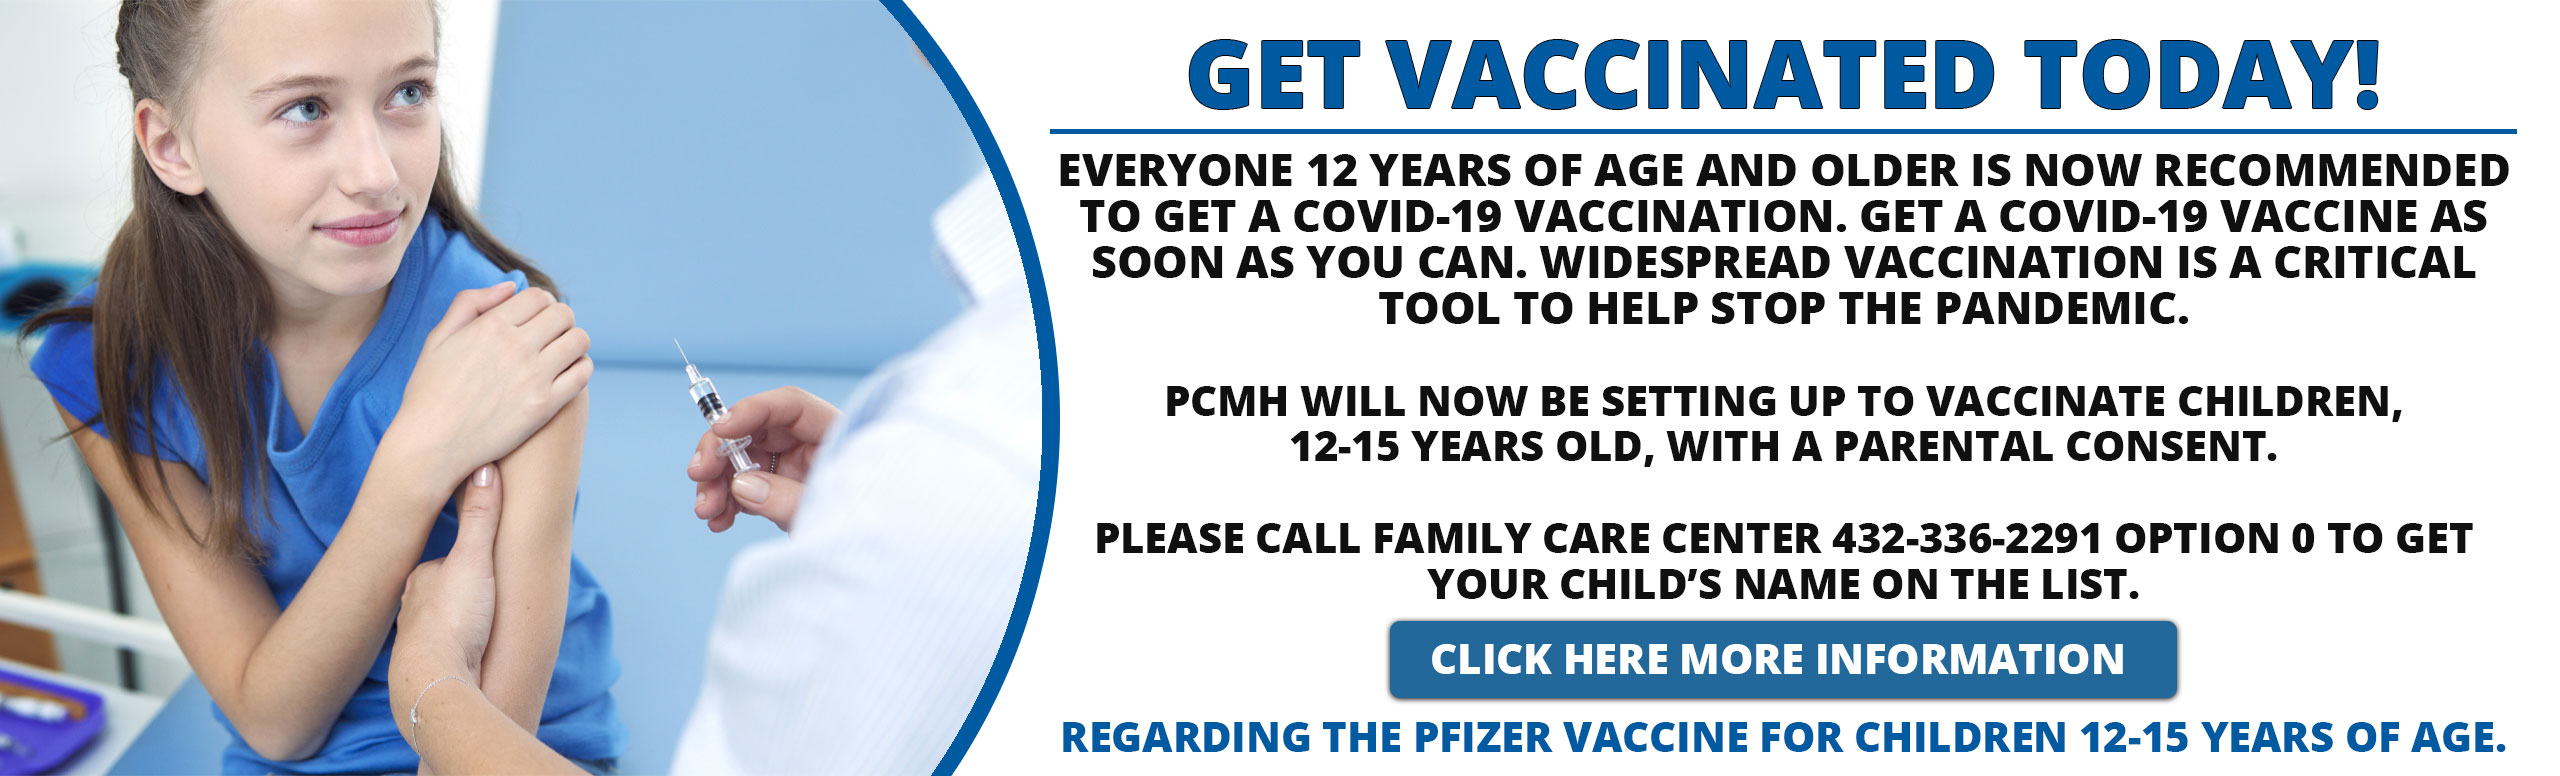 Everyone 12 years of age and older is now recommended to get a COVID-19 vaccination. Get a COVID-19 vaccine as soon as you can. Widespread vaccination is a critical tool to help stop the pandemic.     PCMH will now be setting up to vaccinate children, 12-15 years old, with a parental consent.   Please call 432-336-4230 to get your child's name on the list.      Please see the listed website below for more information regarding the Pfizer vaccine for children 12-15 years of age.  Pfizer-BioNTech COVID-19 Vaccine EUA Fact Sheet for Recipients and Caregivers